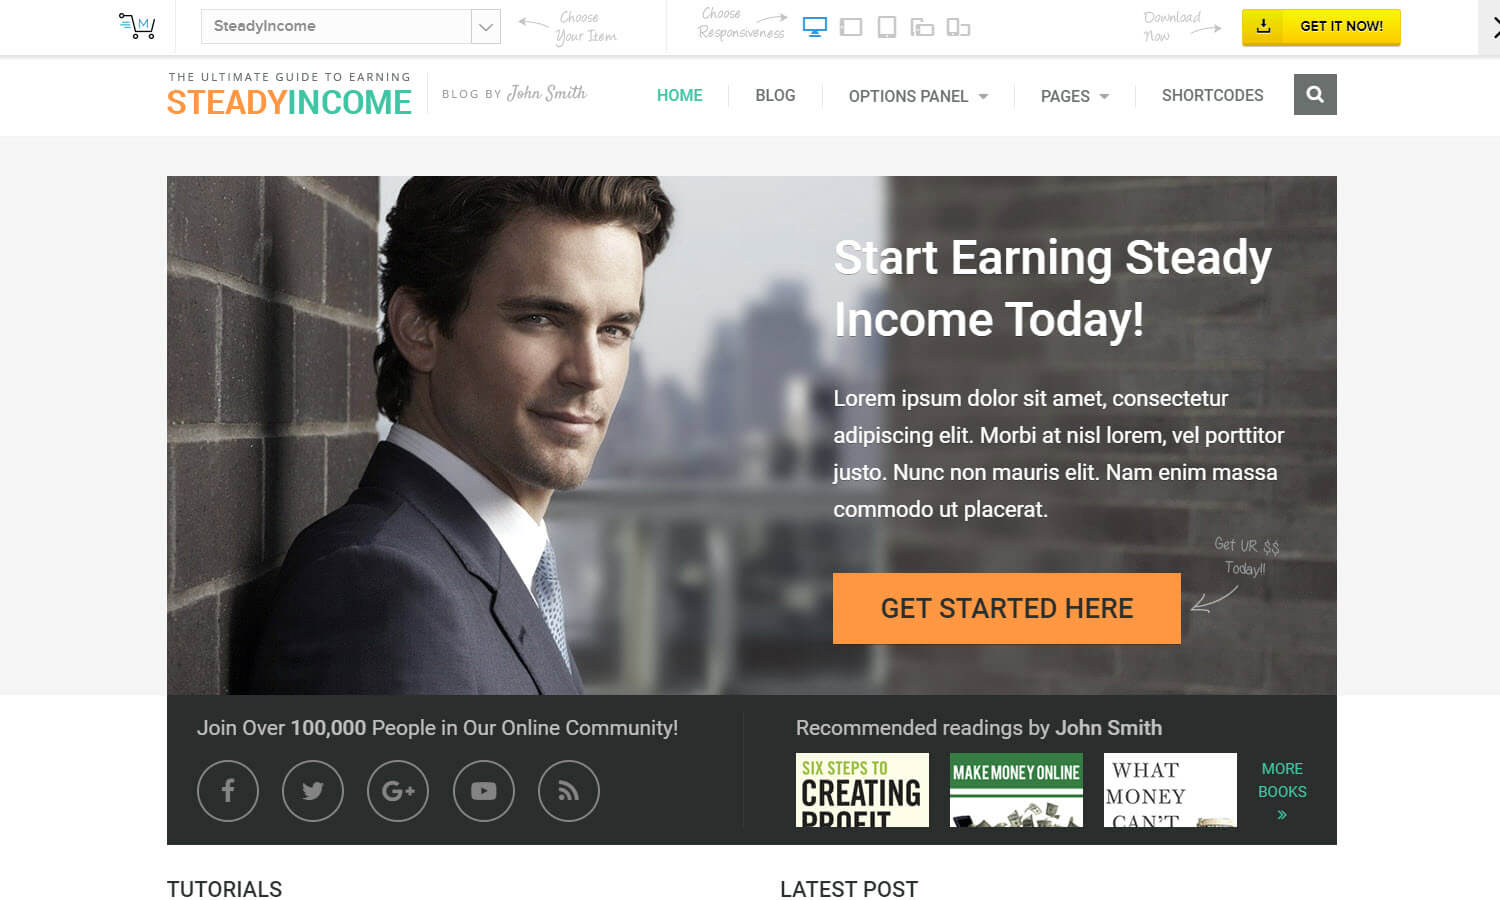 SteadyIncome captura de pantalla